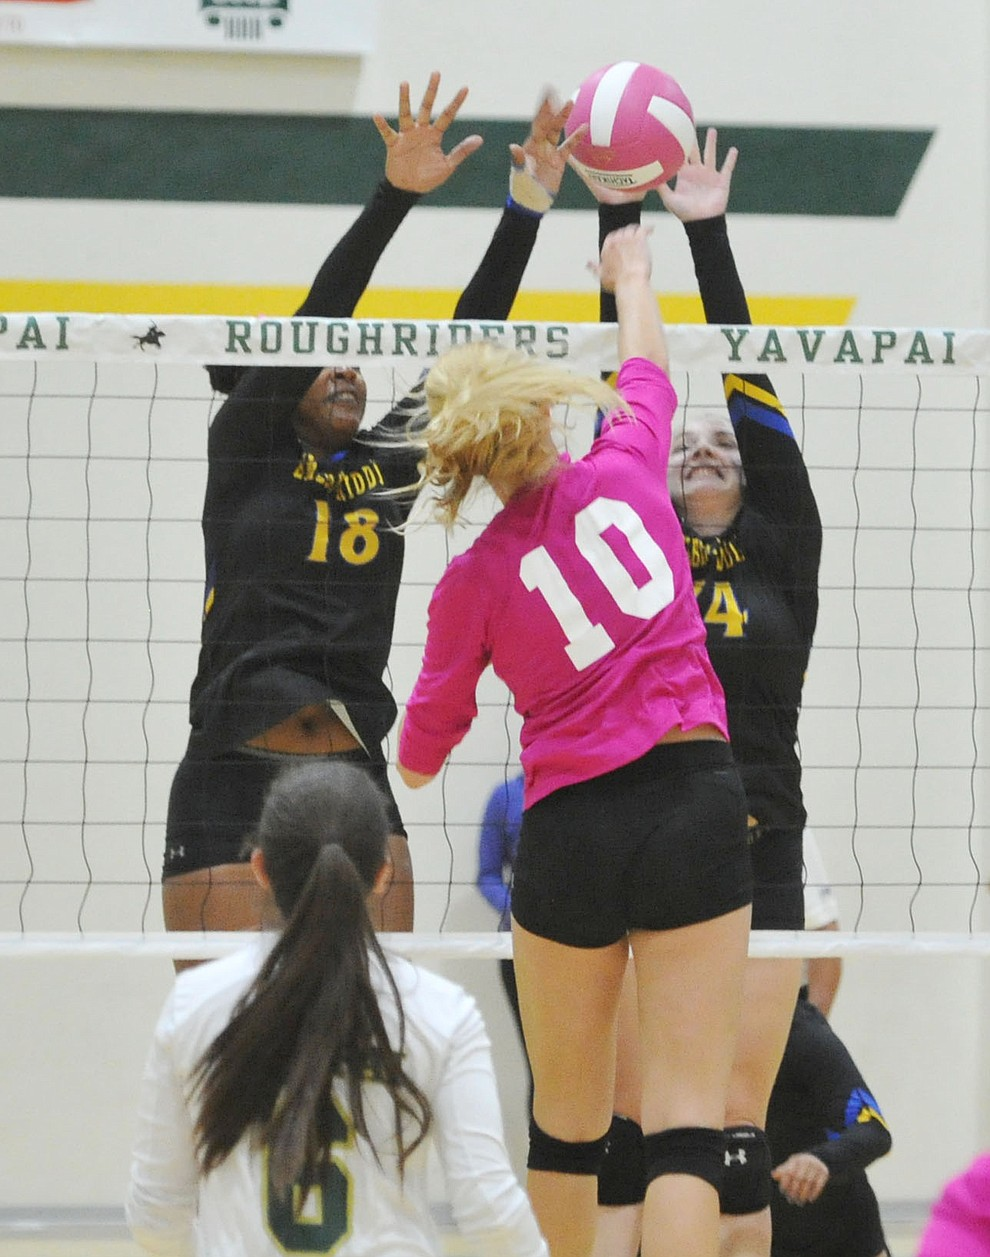 Yavapai's Bailey Anderson (10) gets a kill on ERAU's Sharik Joseph (18) and Caylee Robalin (14) in the Battle Against Breast Cancer volleyball game Wednesday night at Yavapai College in Prescott. (Les Stukenberg/Courier)